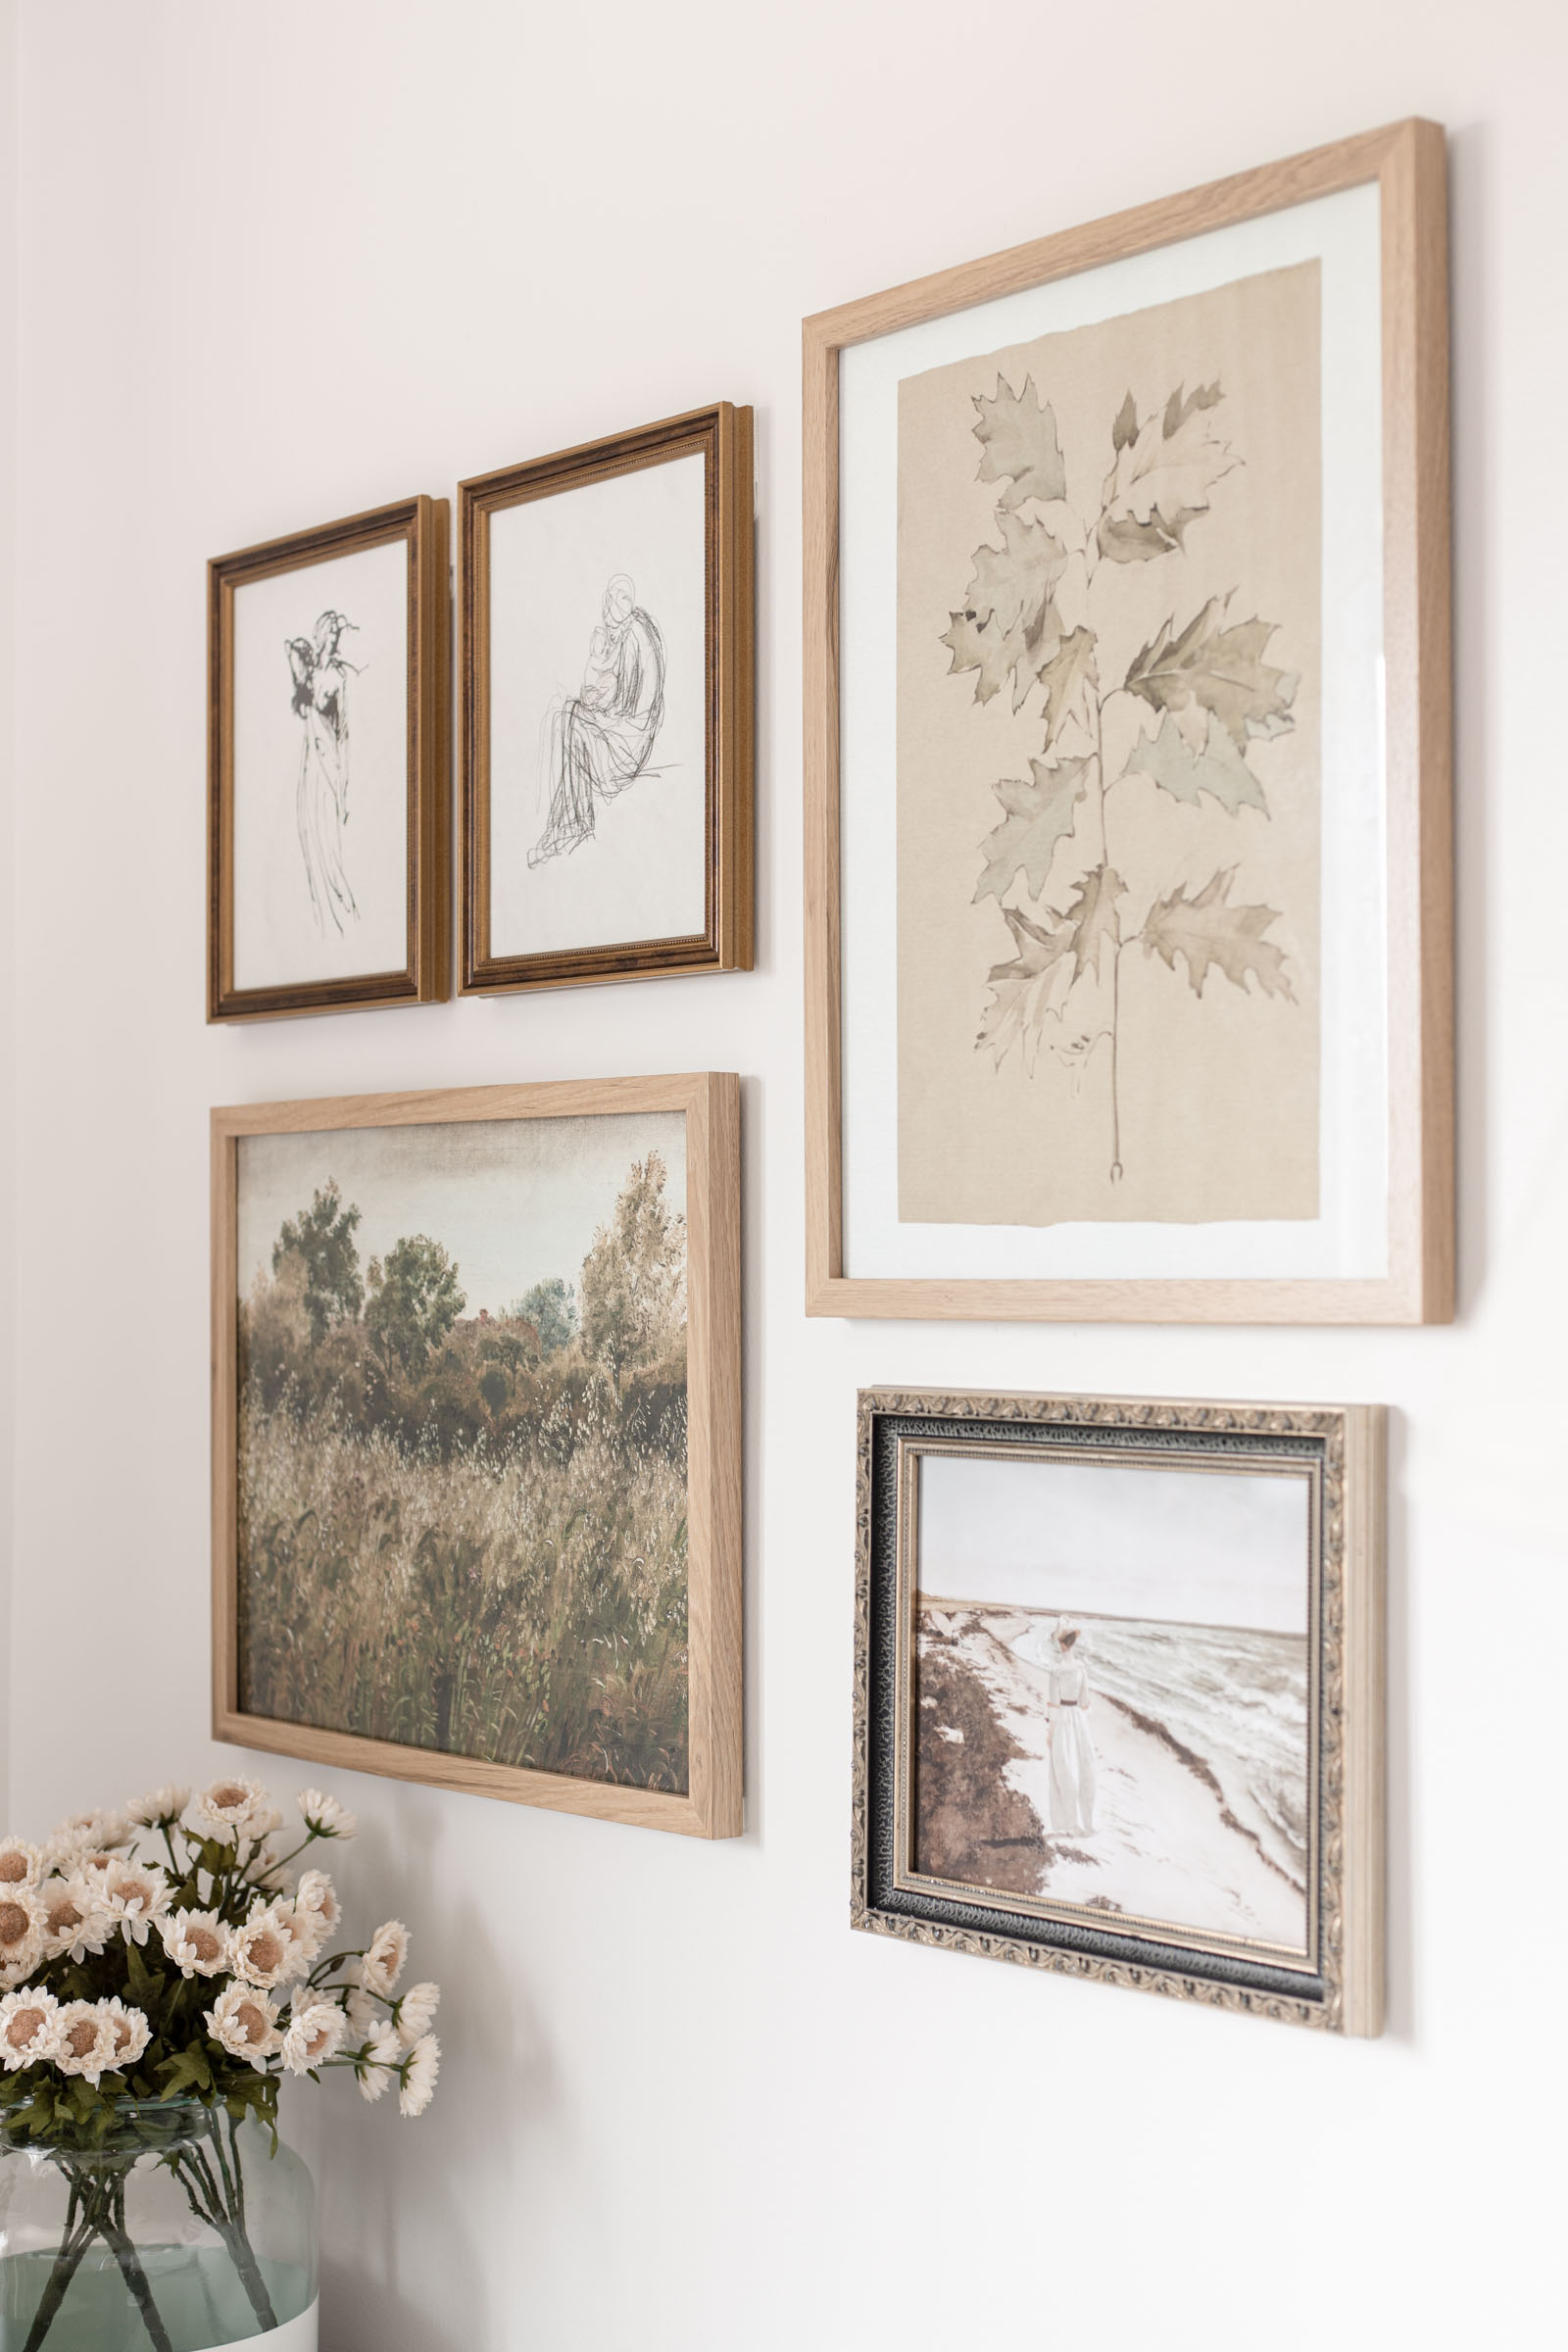 Bedroom Office Nook (and Vintage Art Gallery Wall) | poetto vase, collected antique art gallery wall